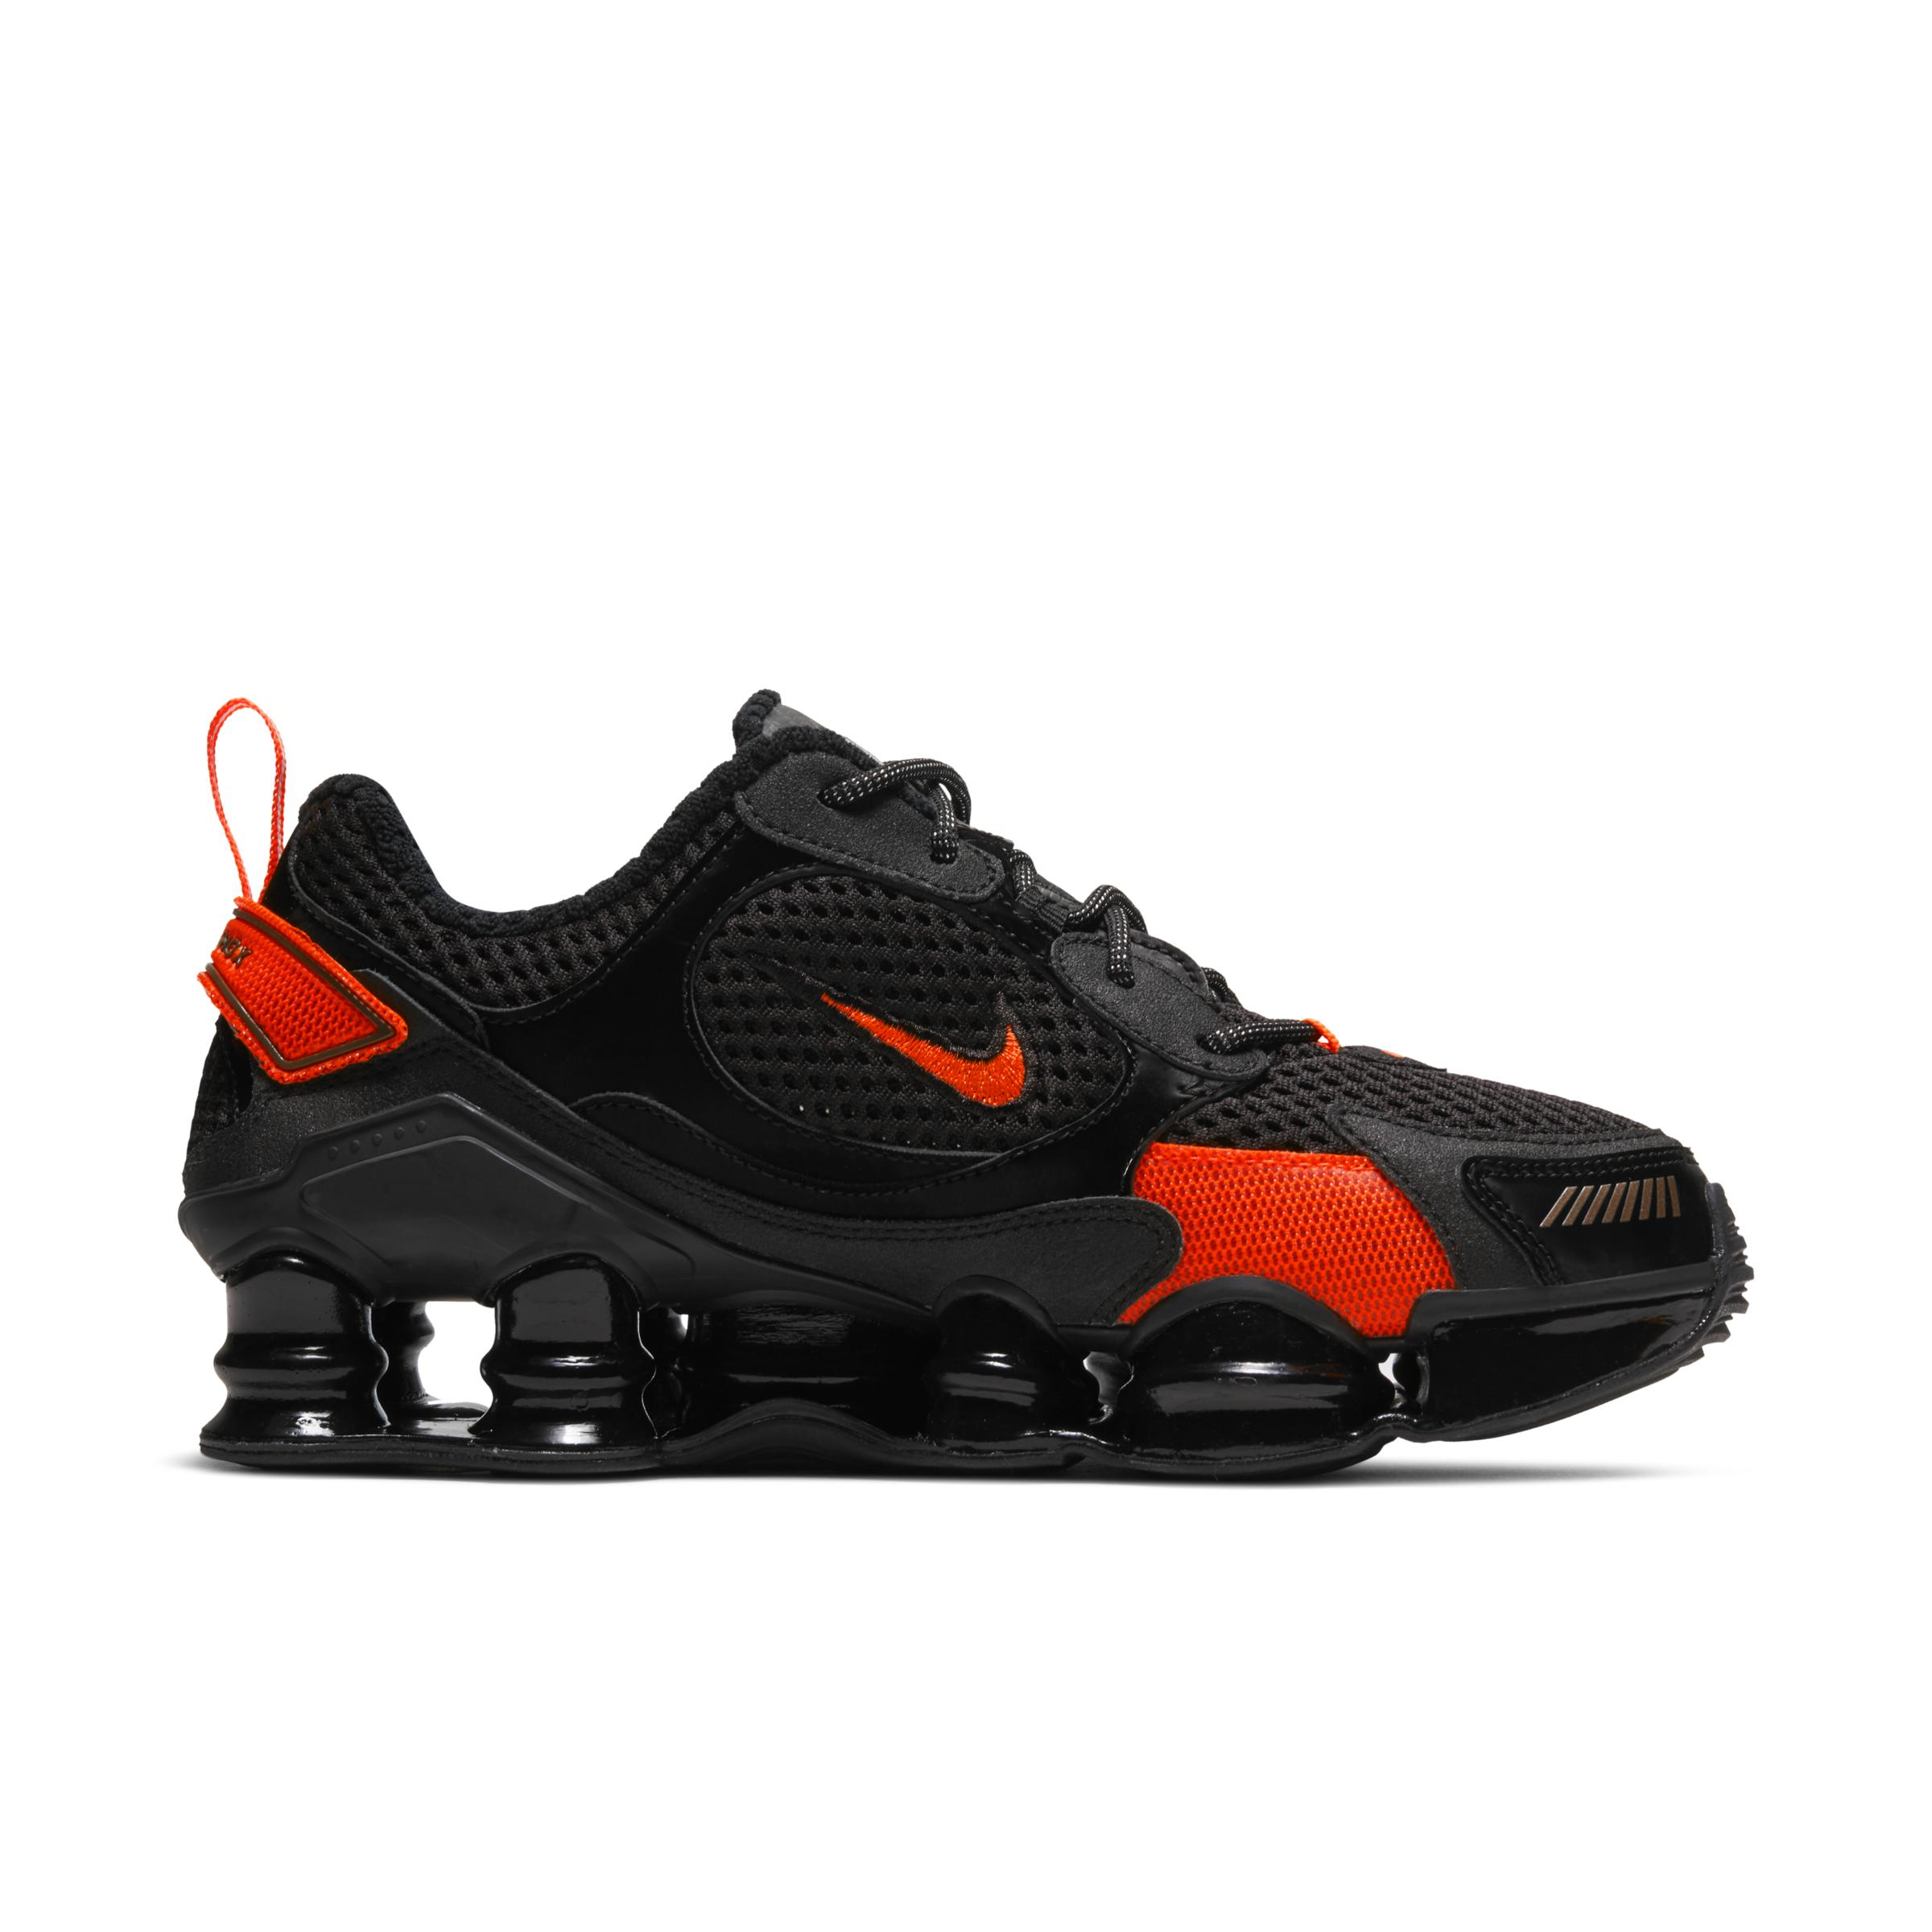 Shox TL Nova SP Zapatillas Nike de color Negro